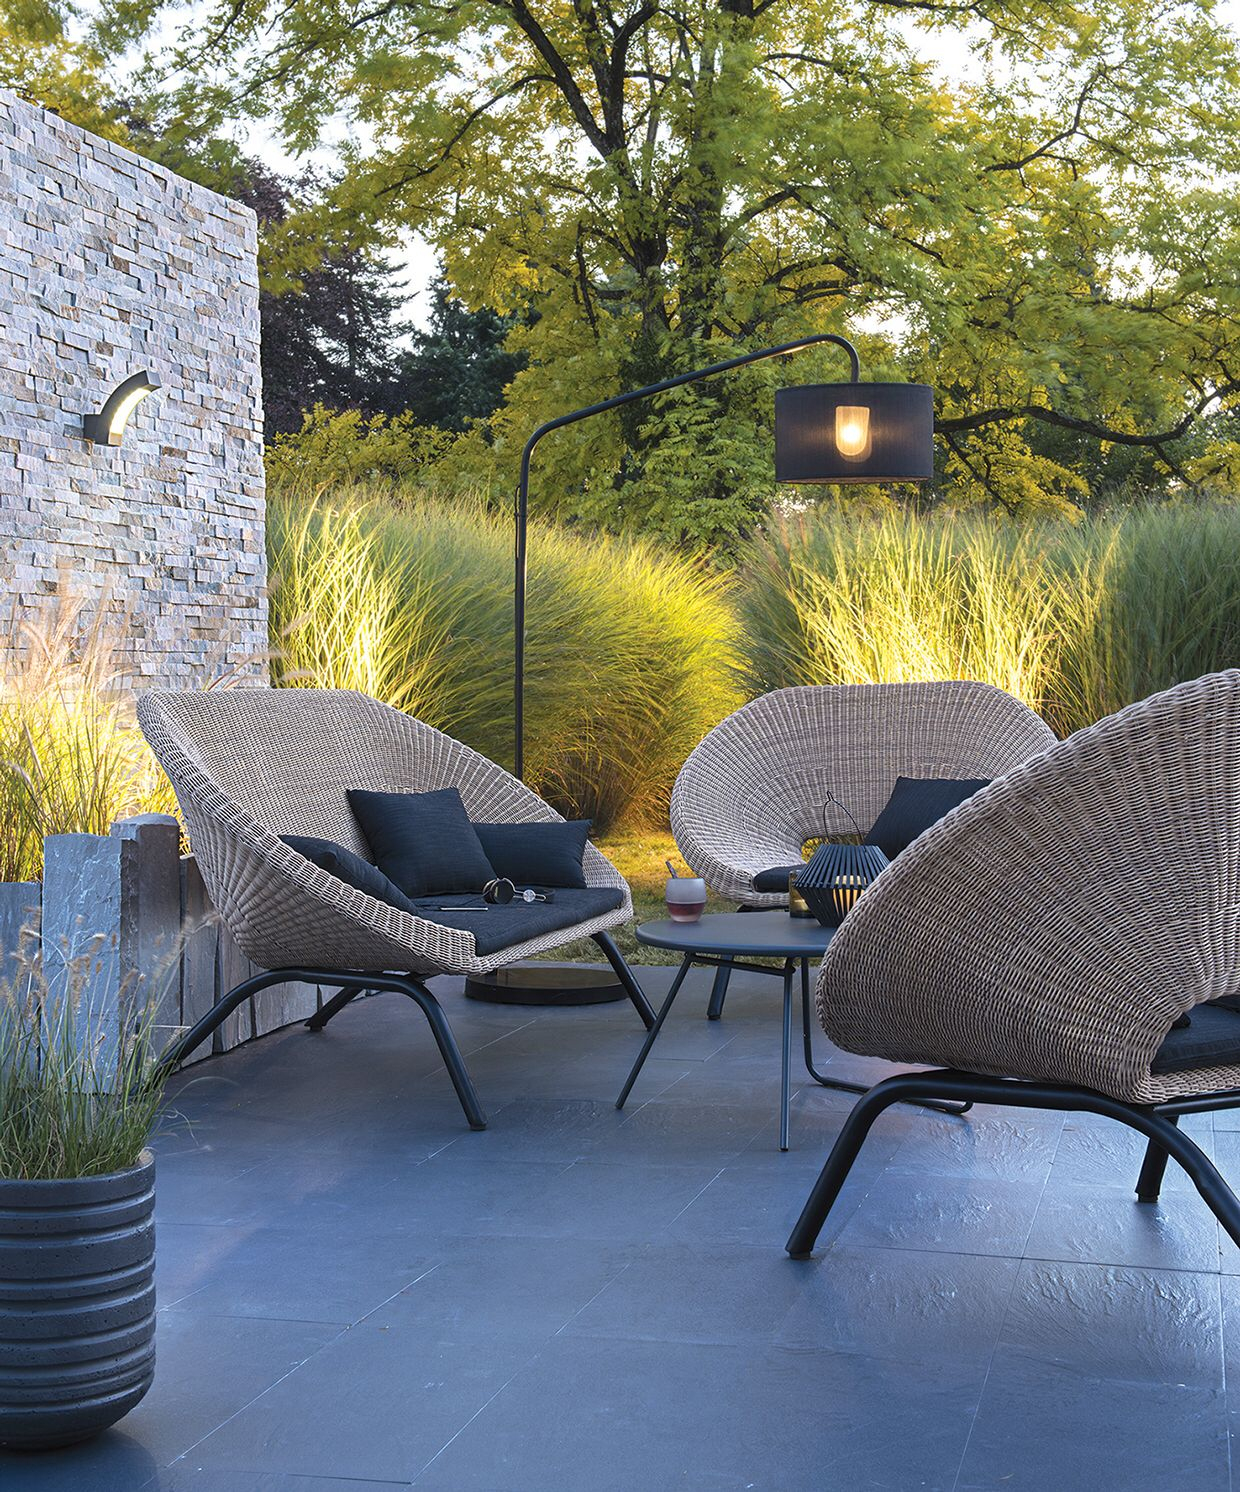 Stylish Modern Seating For The Garden ... tout Salon De Jardin Blooma